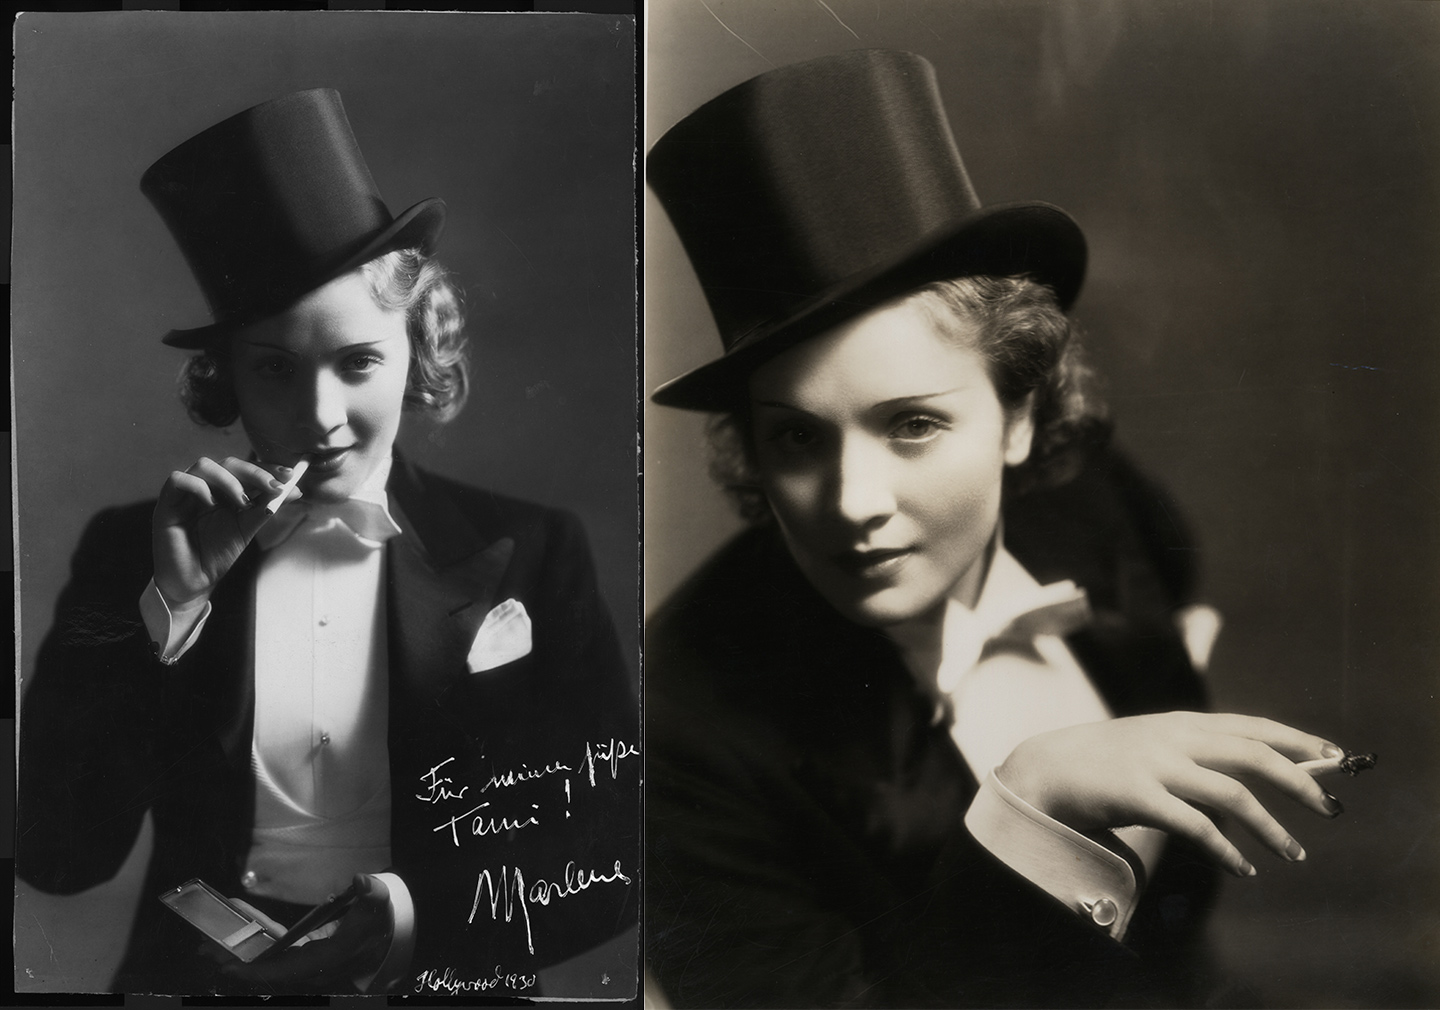 Marlene Dietrich: Dressed for the Image